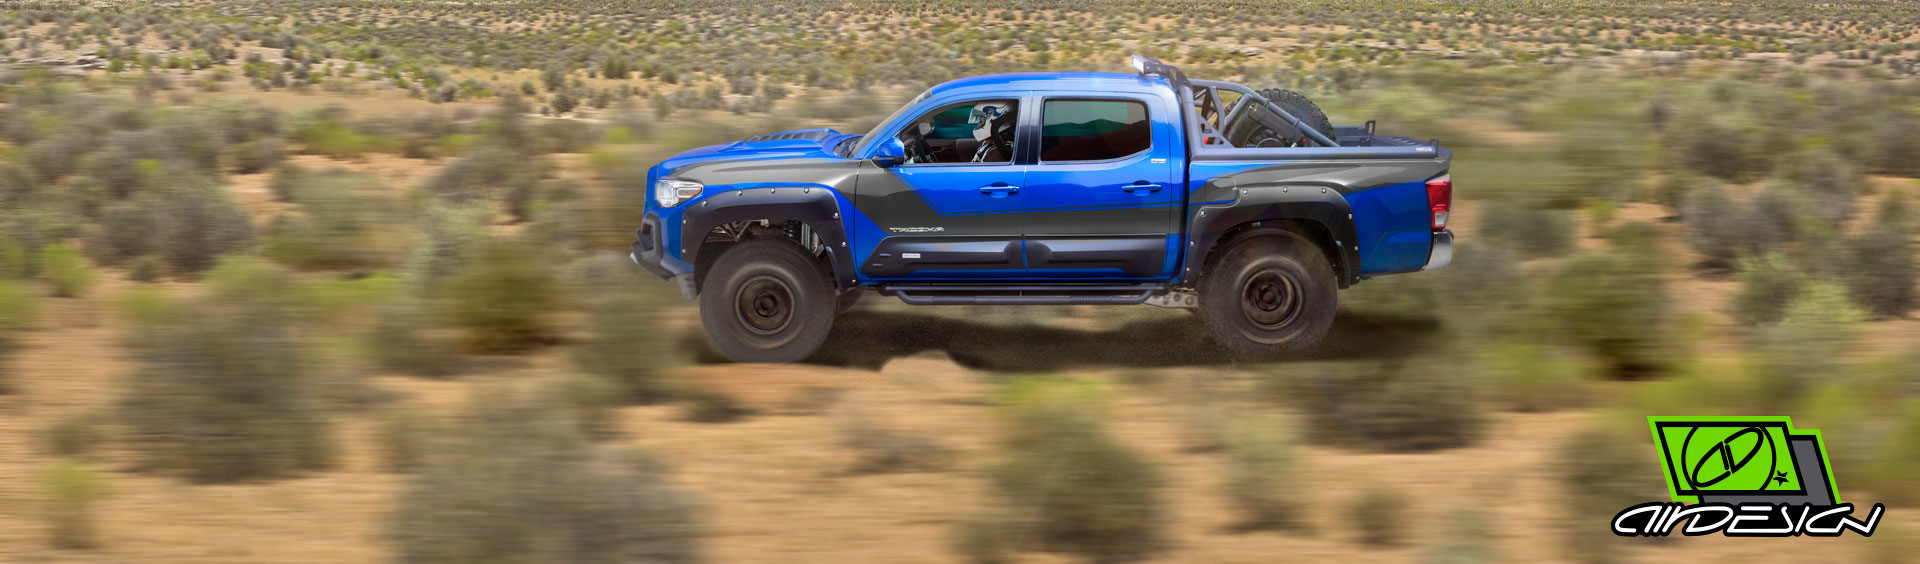 Air Design Toyota Tacoma Off Road Body Kit